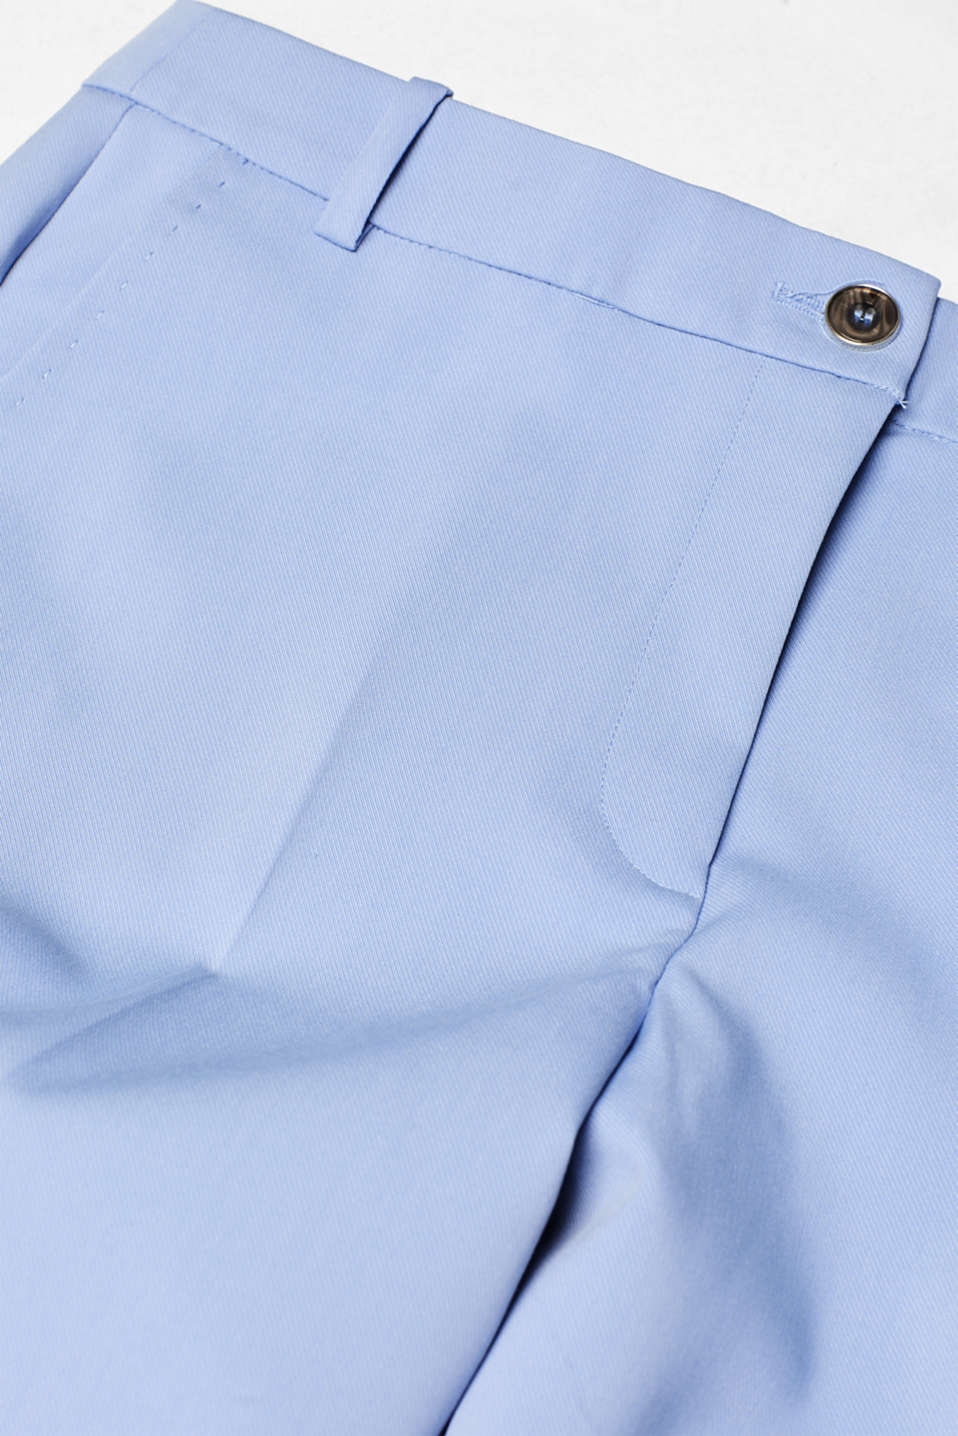 SPRING Mix + Match stretch trousers, LIGHT BLUE, detail image number 4